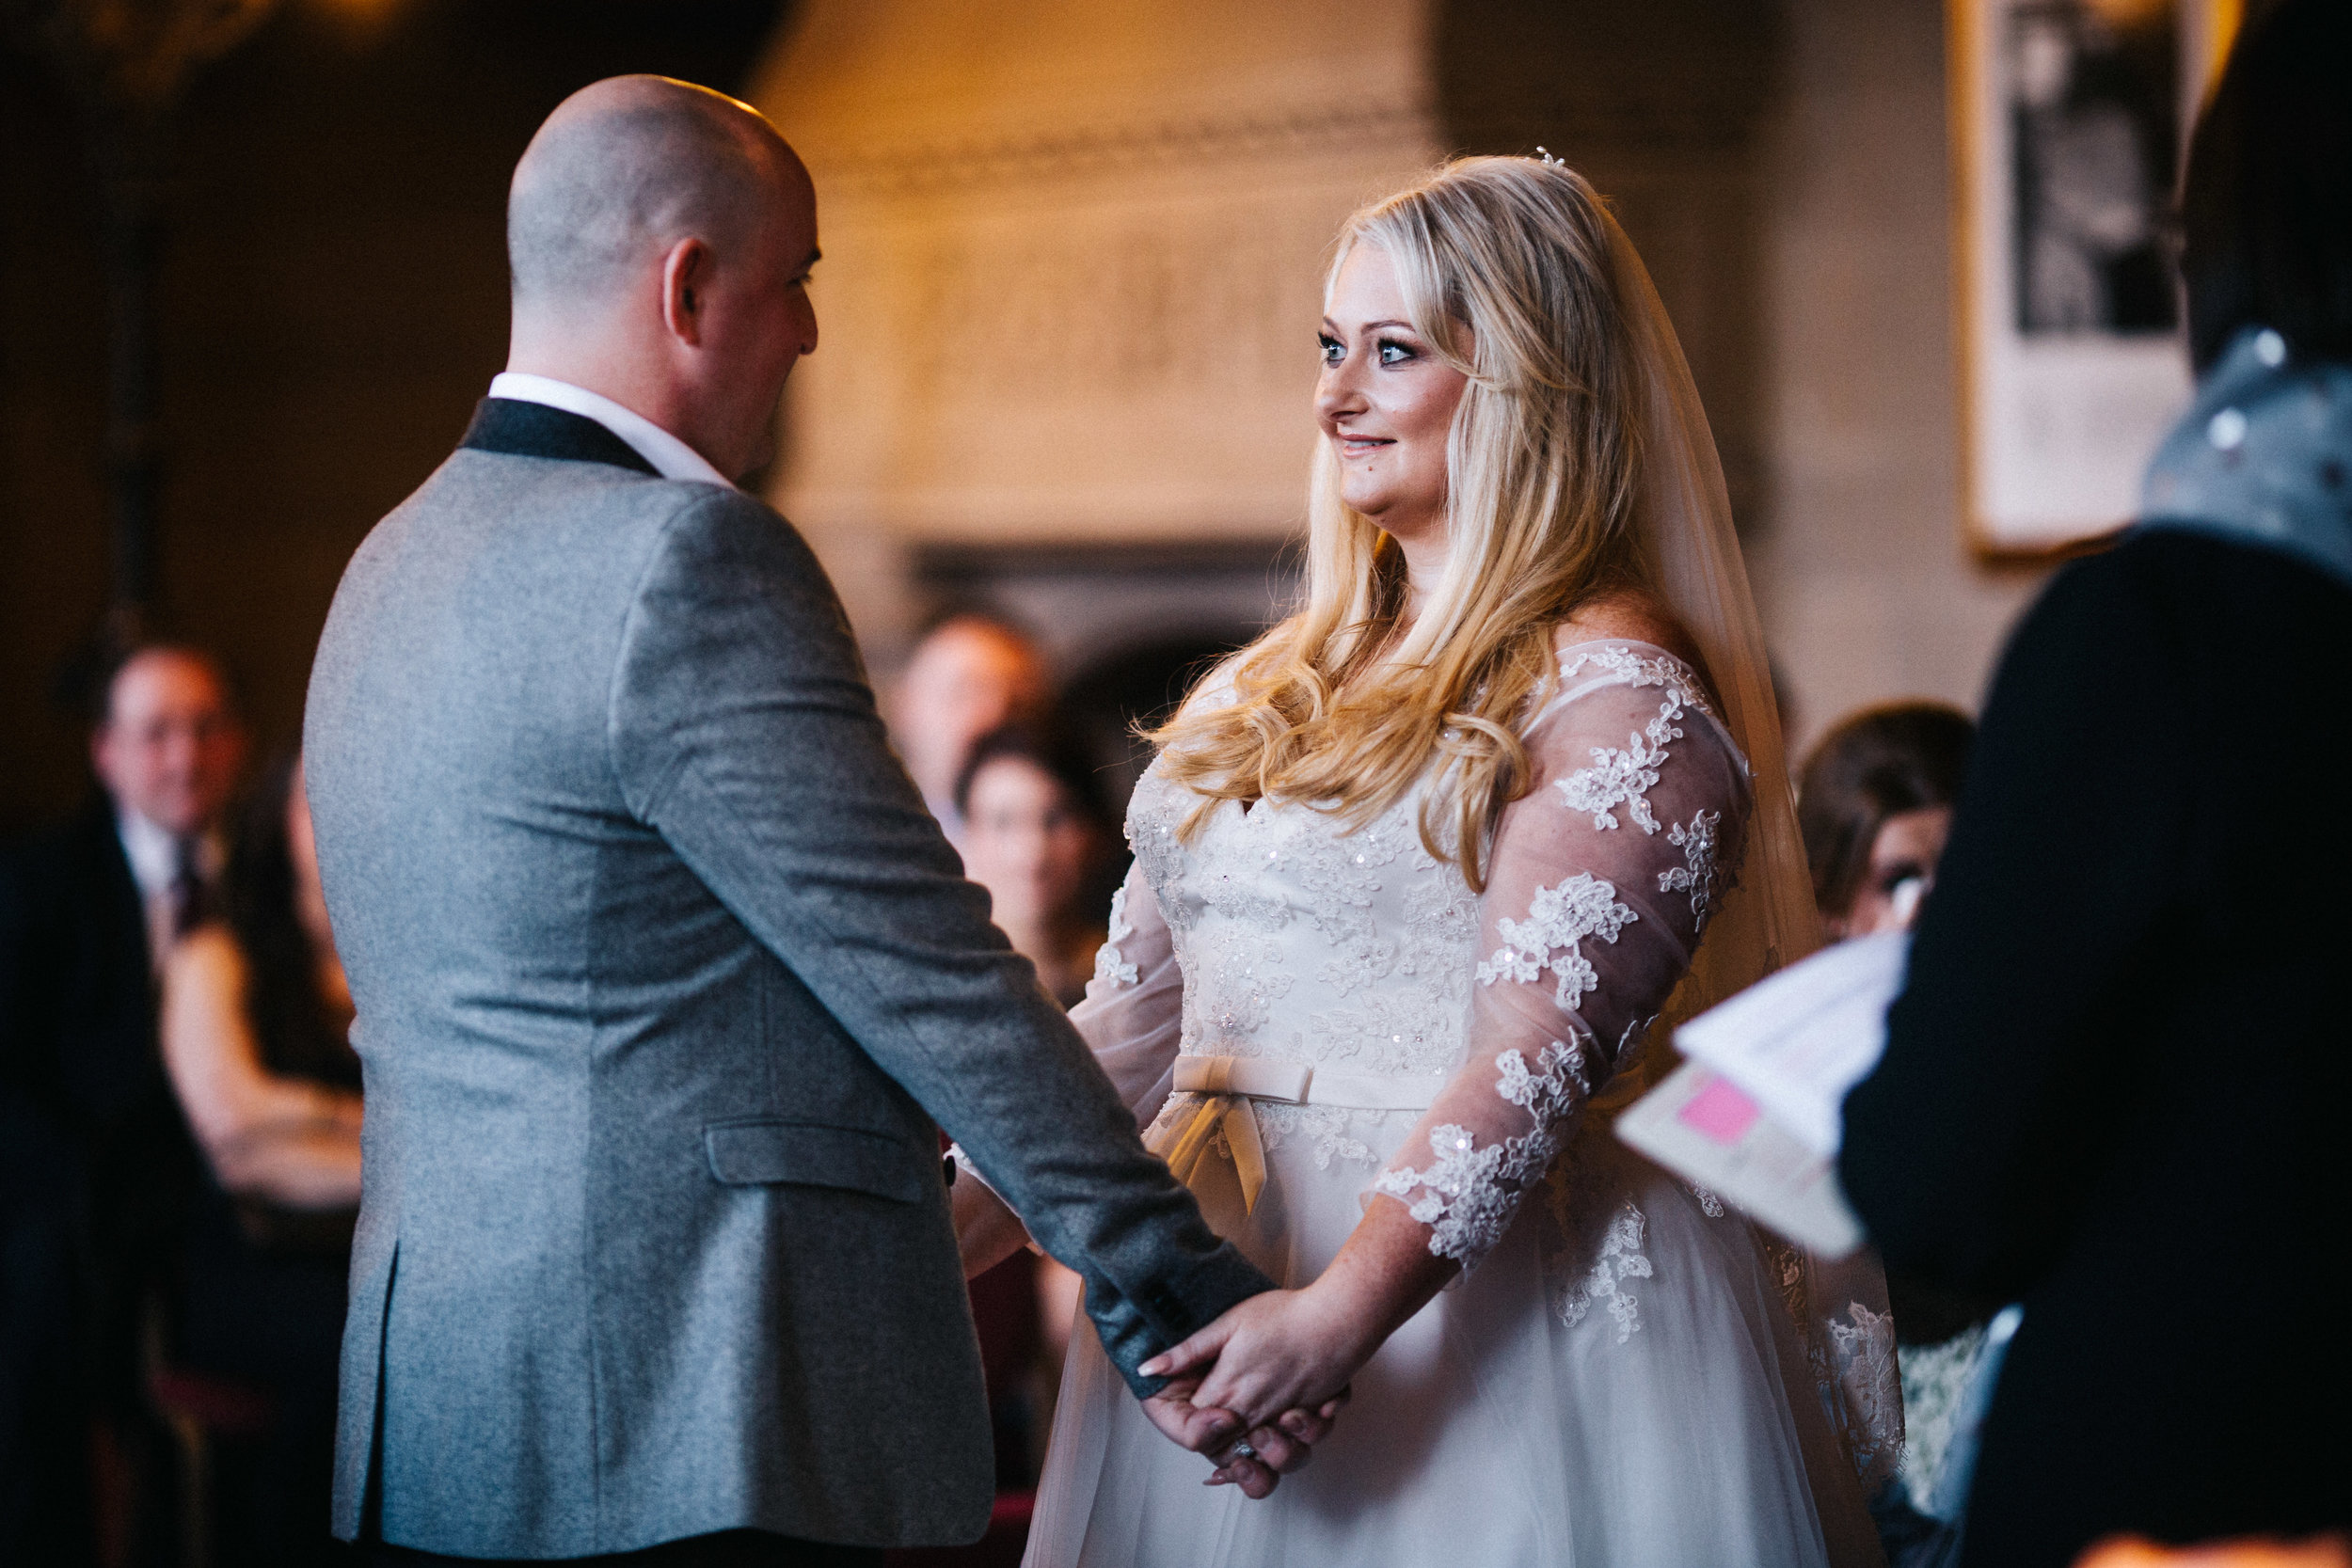 exchanging vows - wedding photography North West